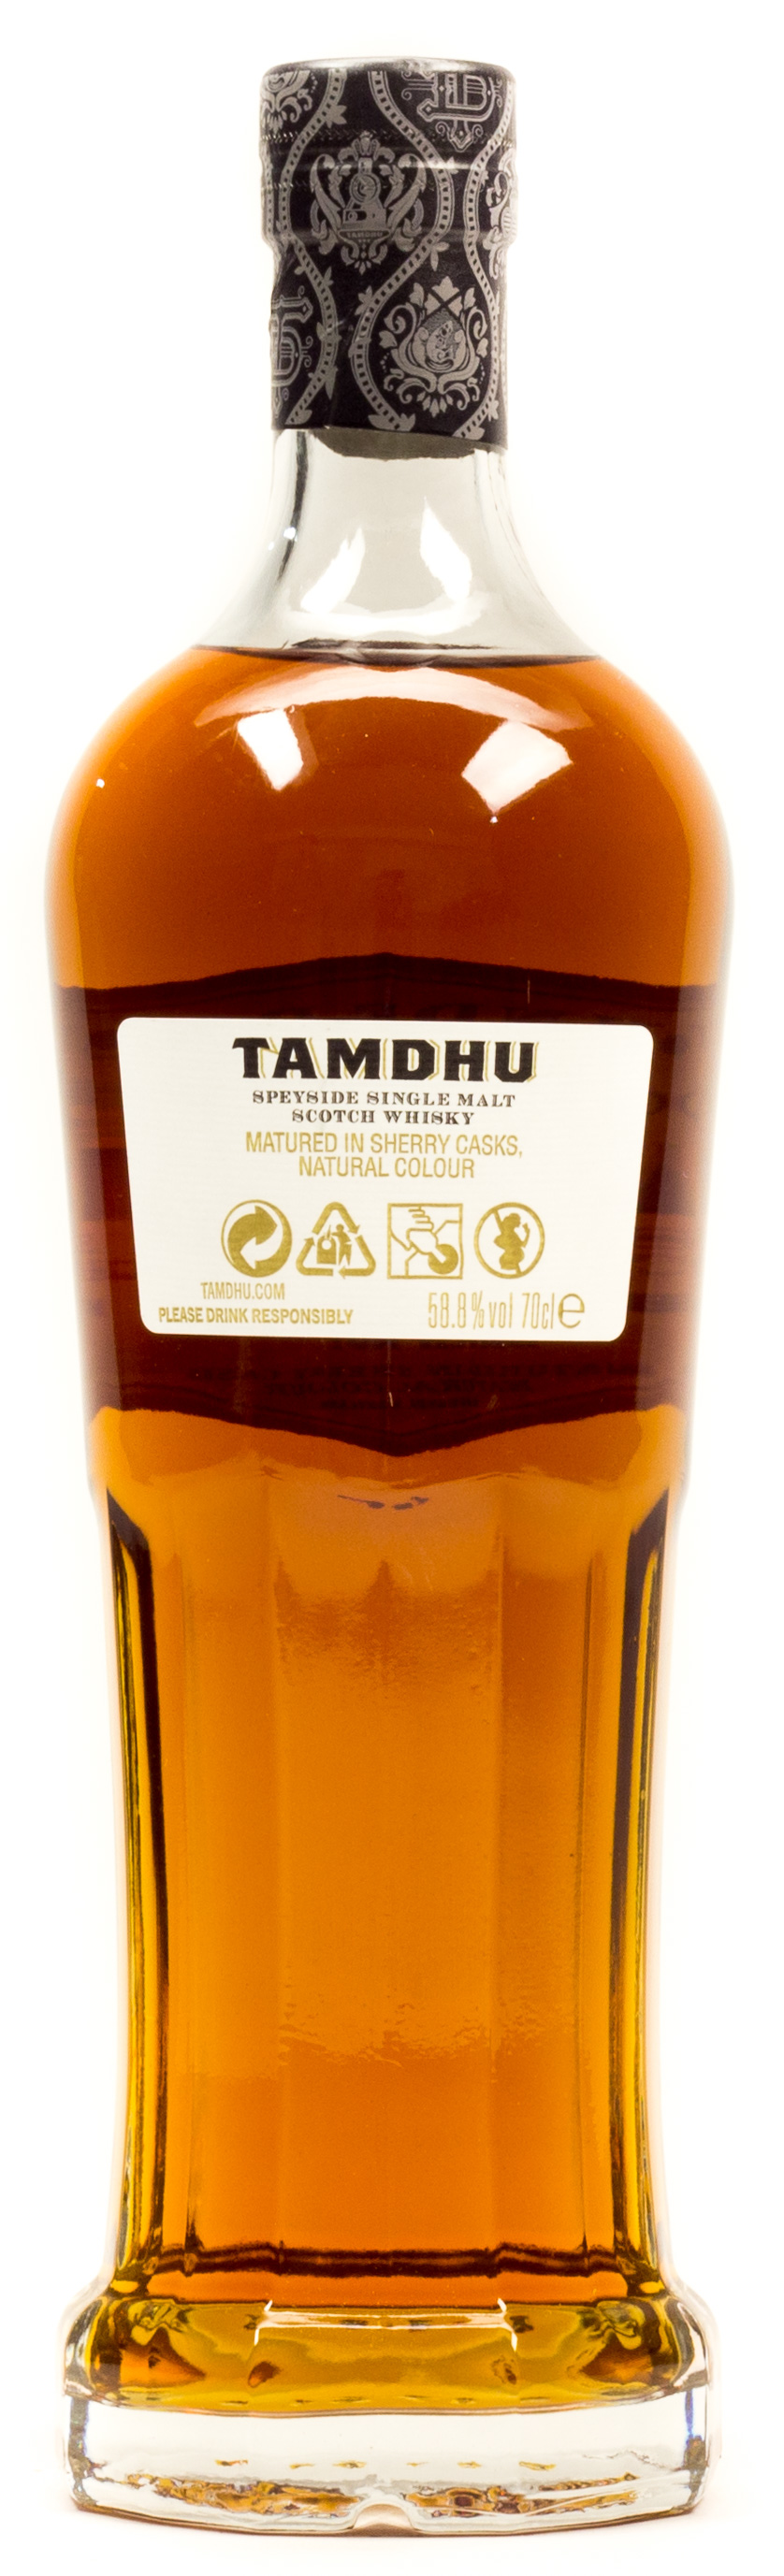 Tamdhu Speyside Single Malt Scotch Whisky Batch Strength 0,7 l